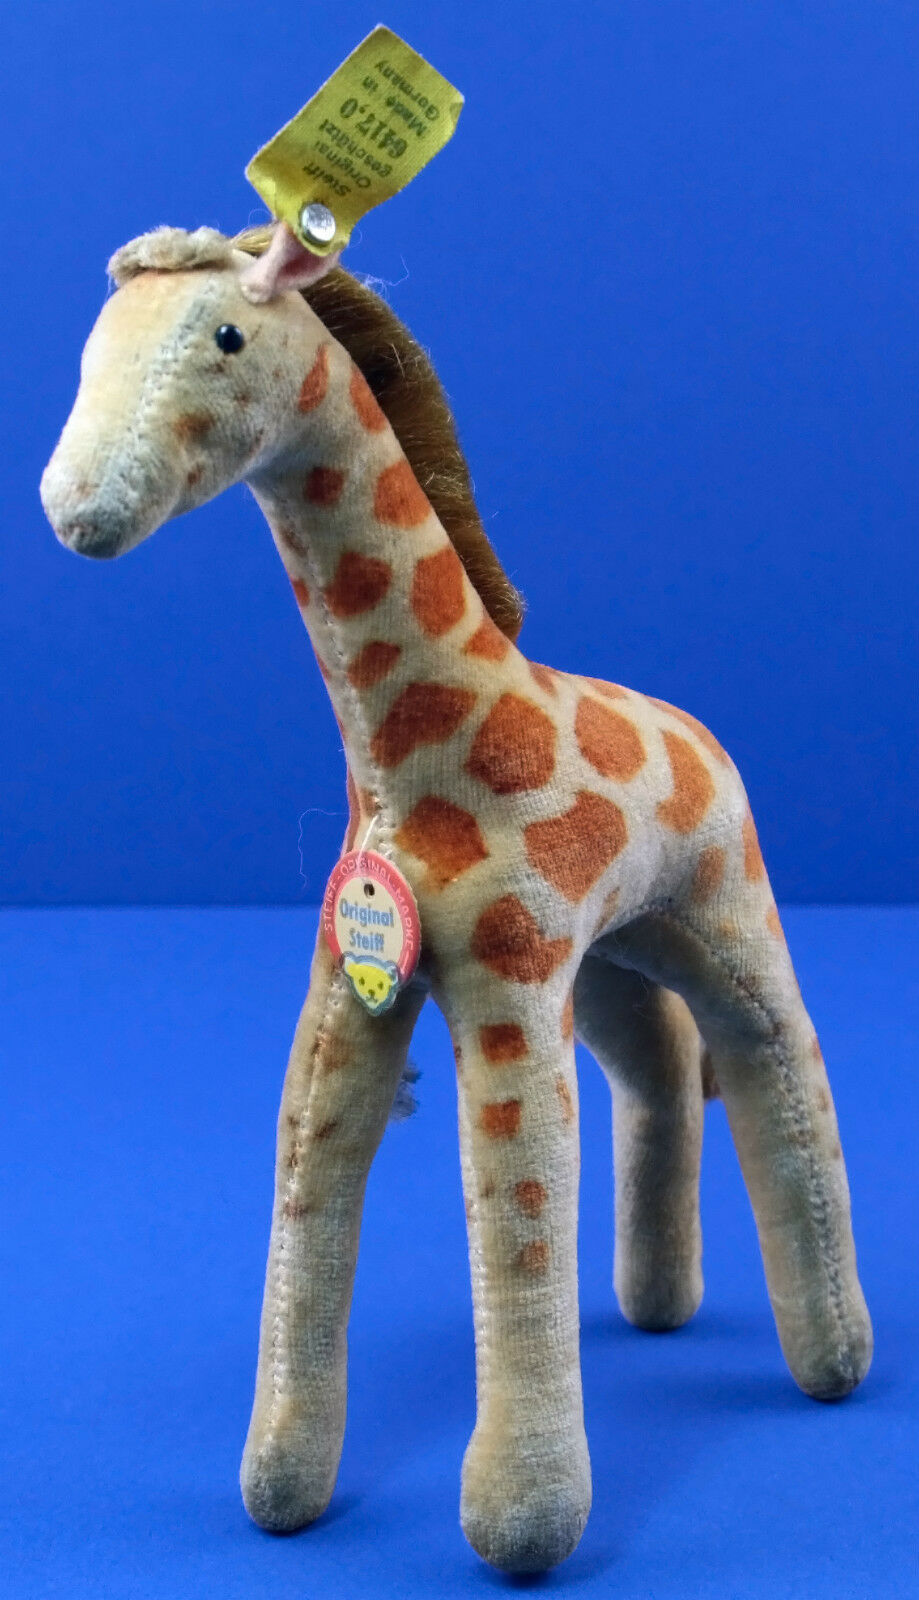 Original US Zone Steiff Giraffe  6414.0 With Raised Silberscript Button